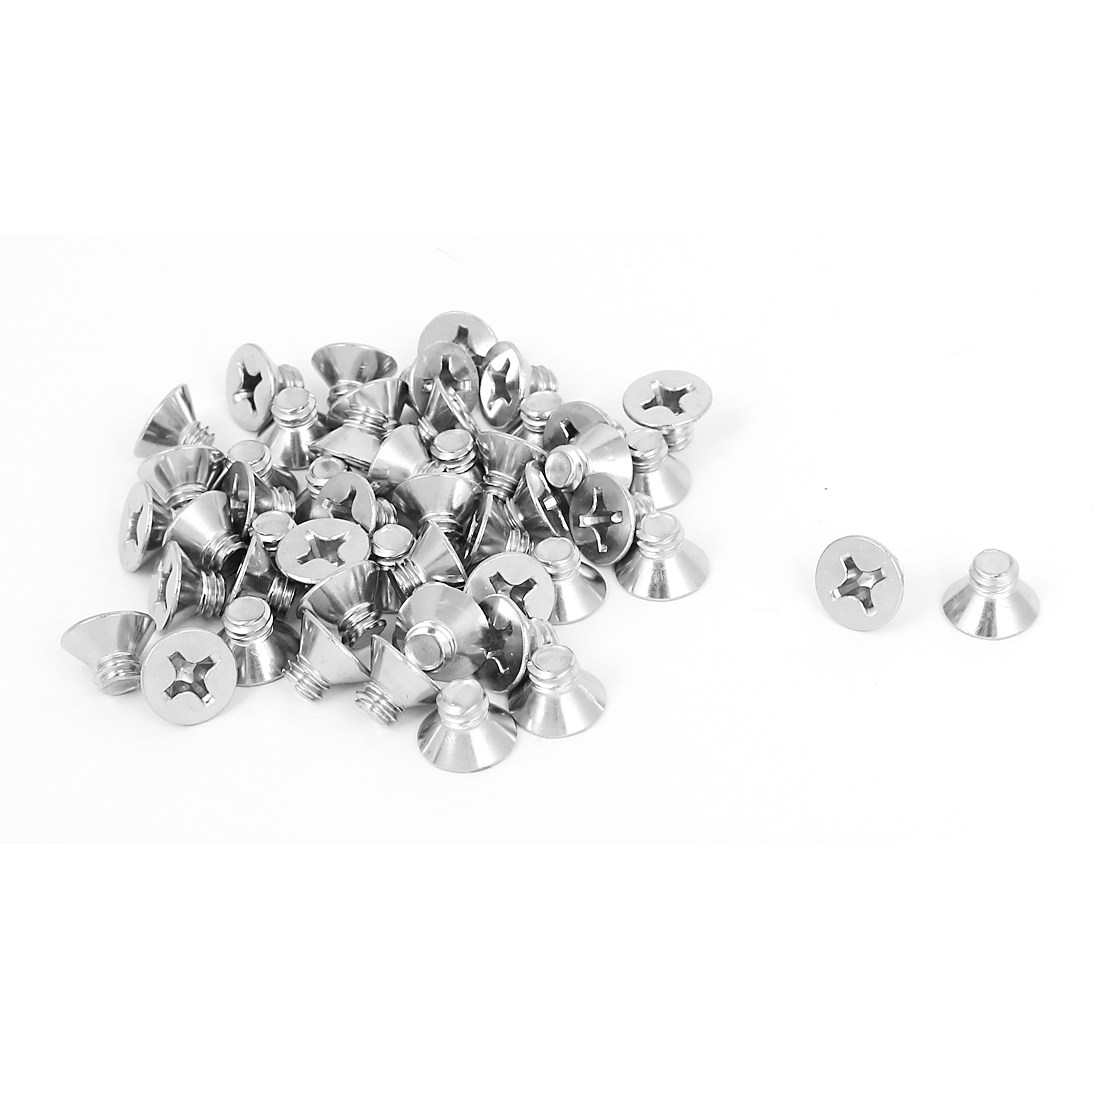 "1/4""-20x5/16"" 304 Stainless Steel Phillips Flat Countersunk Head Screws 50pcs"